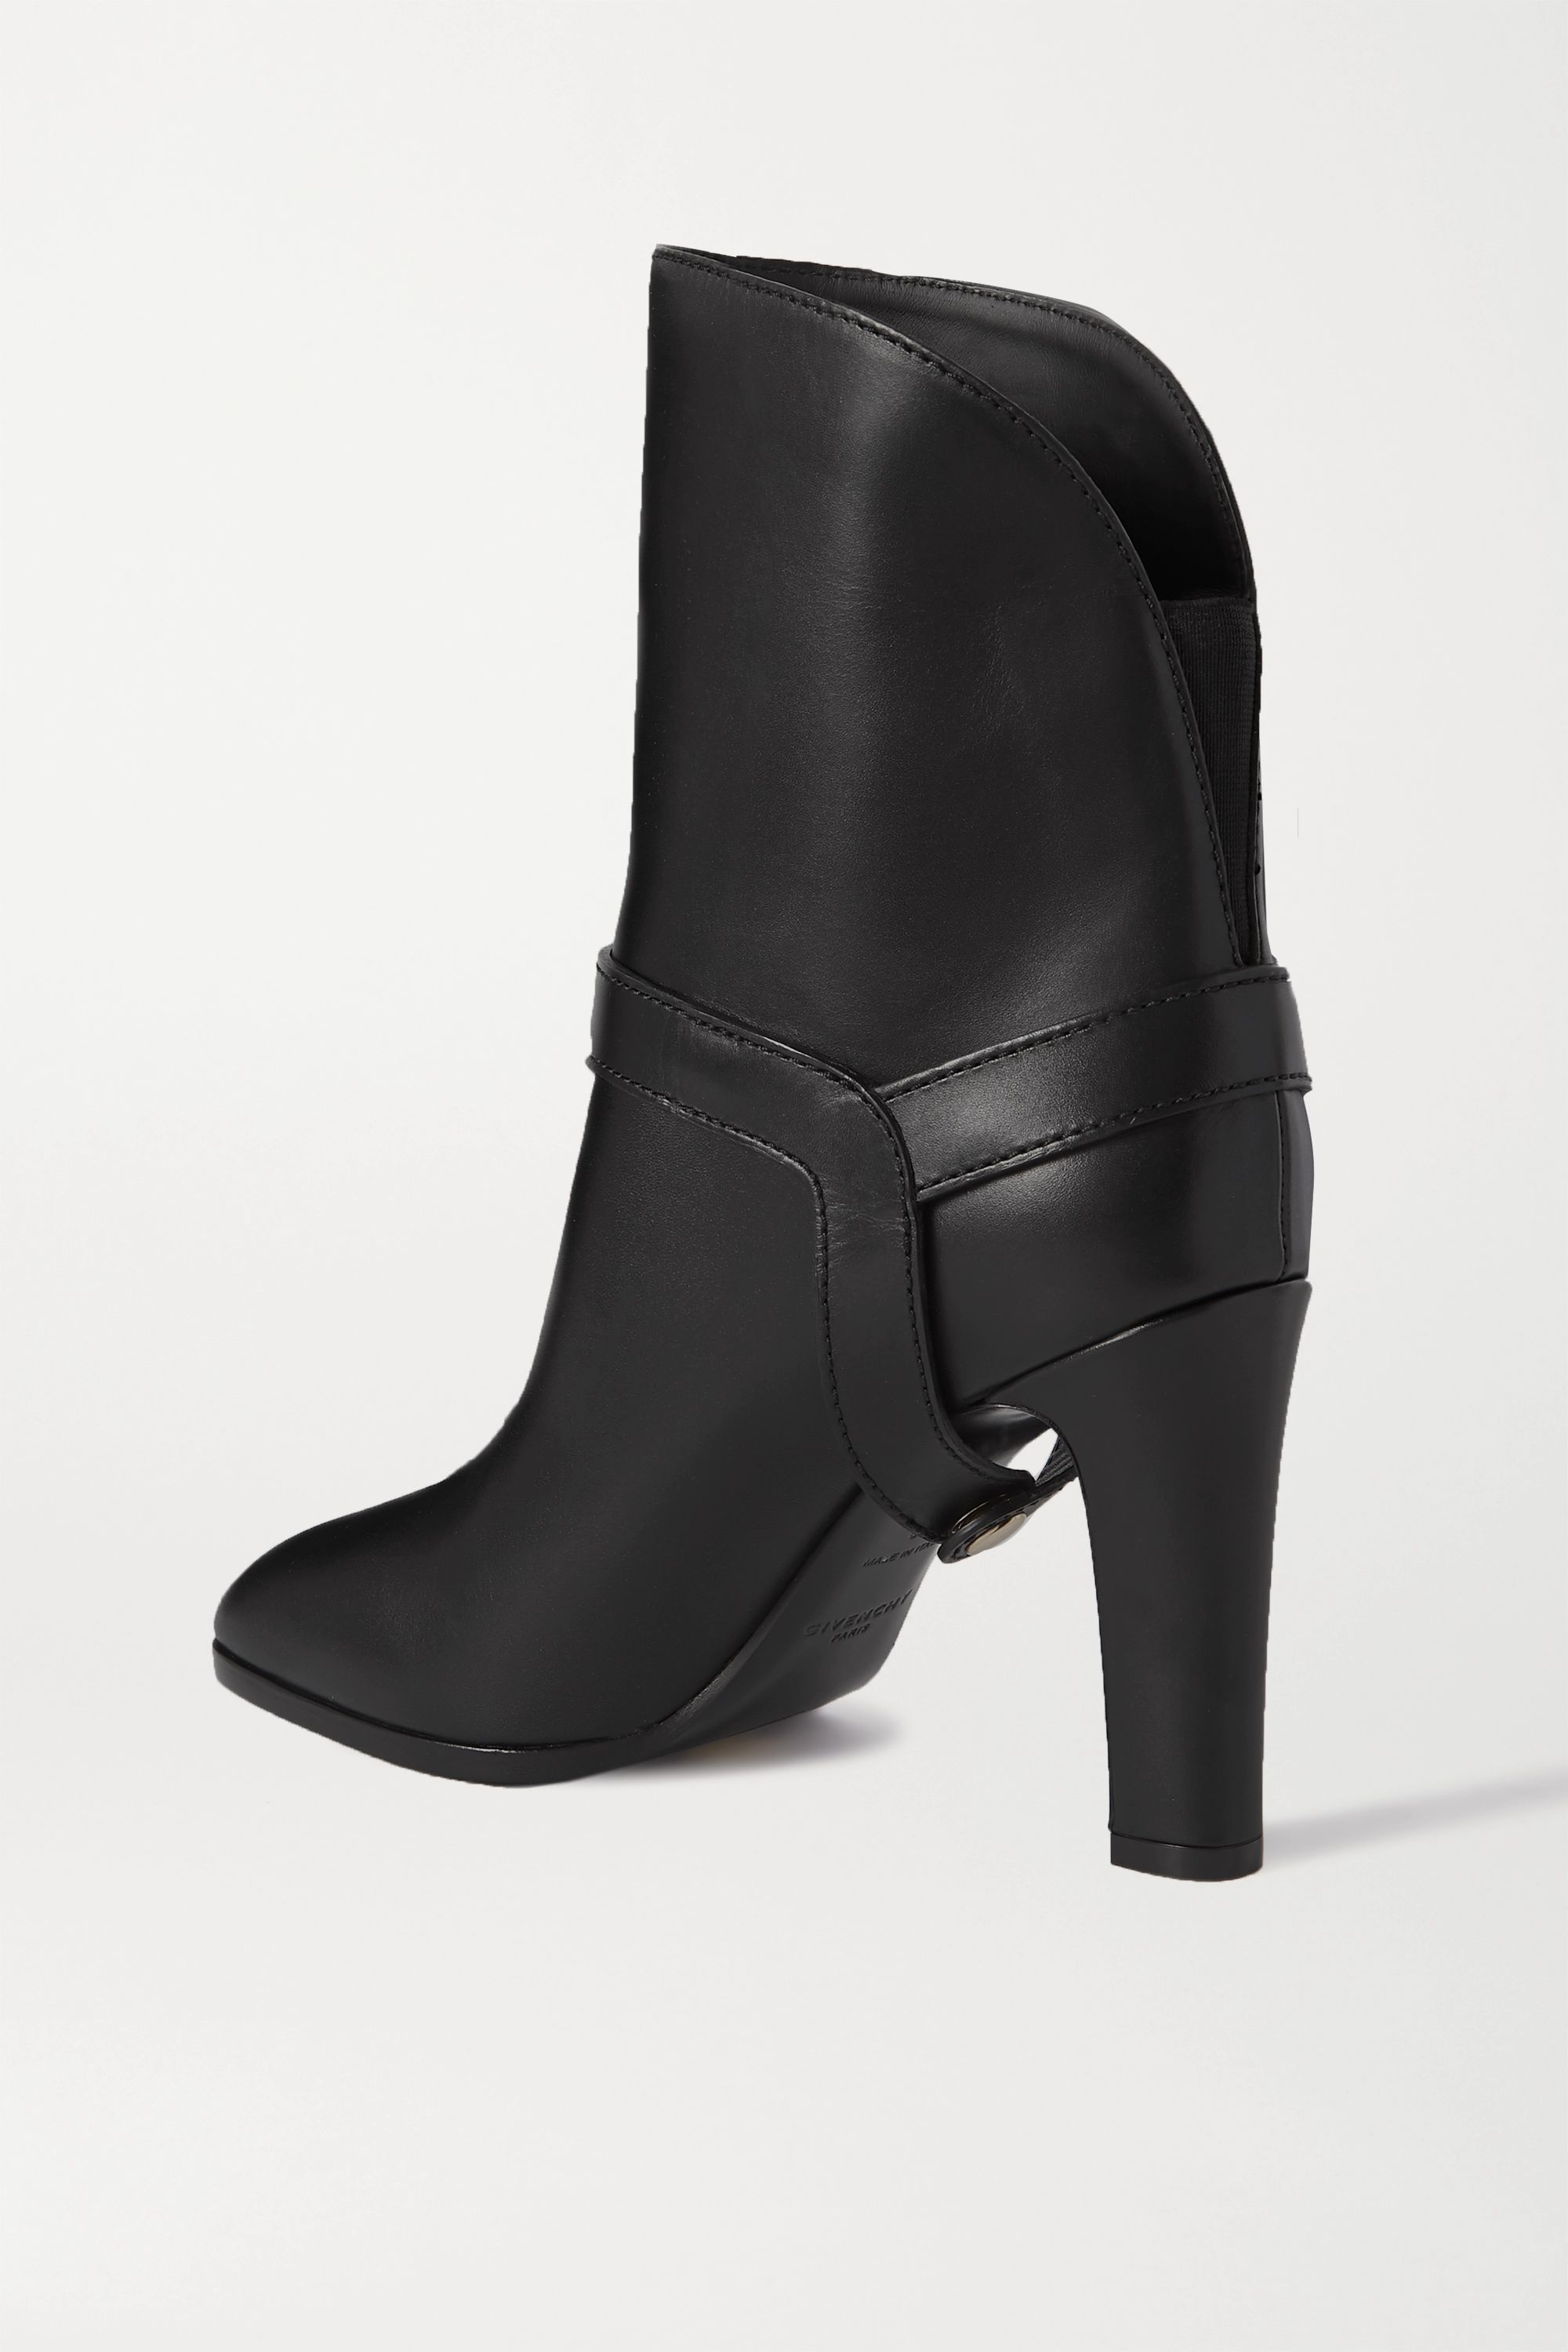 Givenchy Eden leather ankle boots